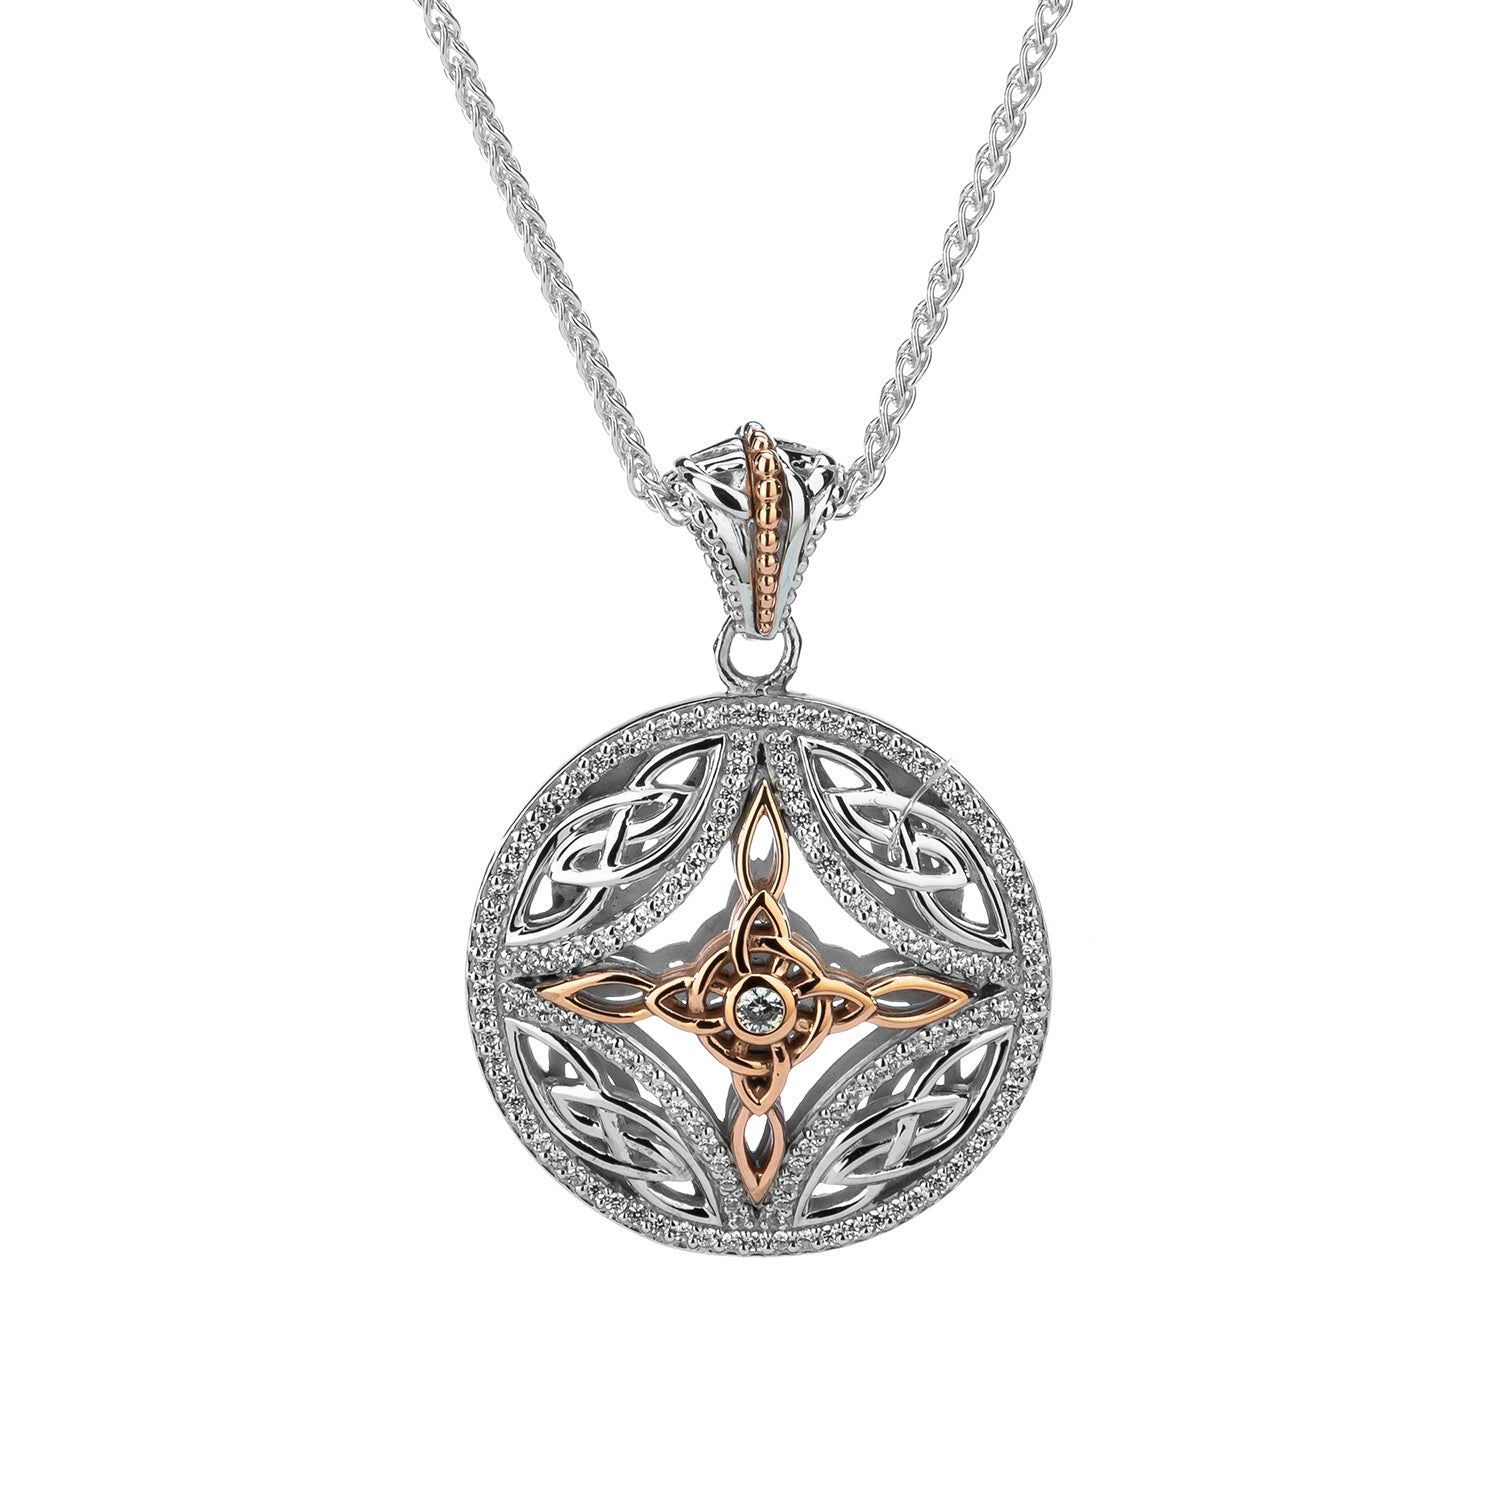 Pendant Rhodium 10k Rose CZ Cross Pendant from welch and company jewelers near syracuse ny